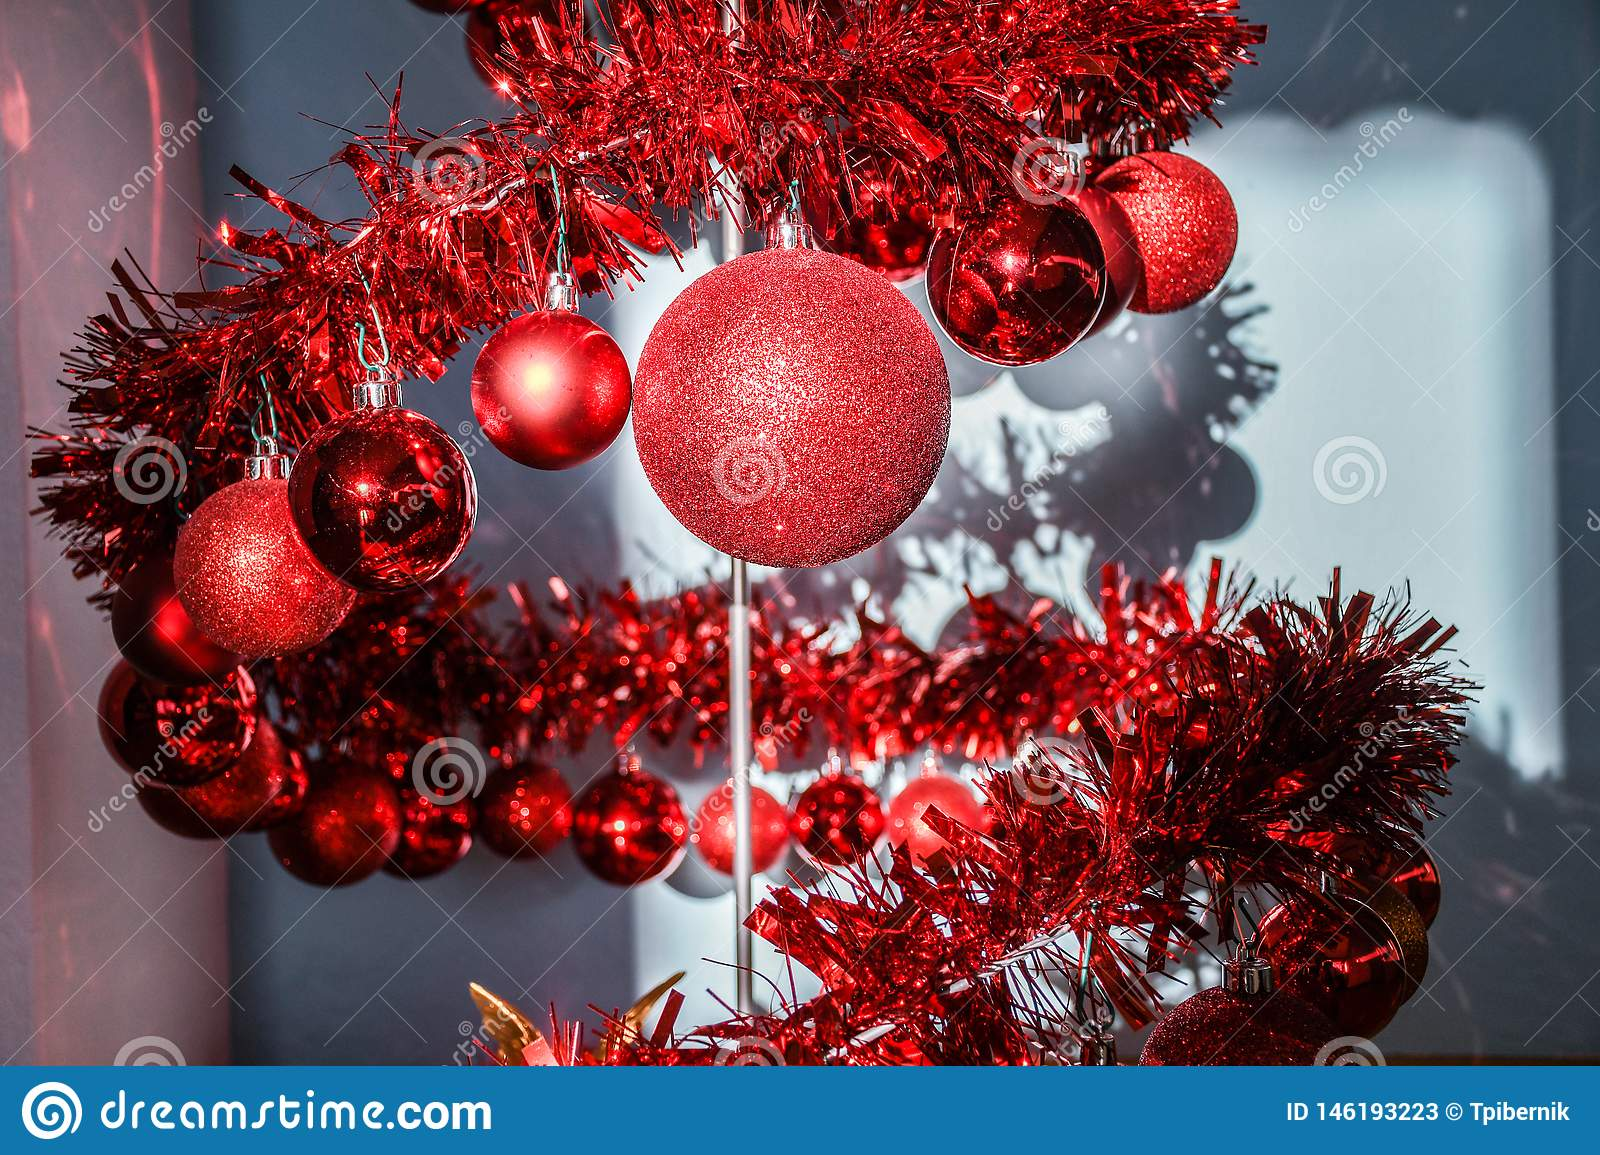 Modern metal spiral Christmas tree decorated with red shiny balls